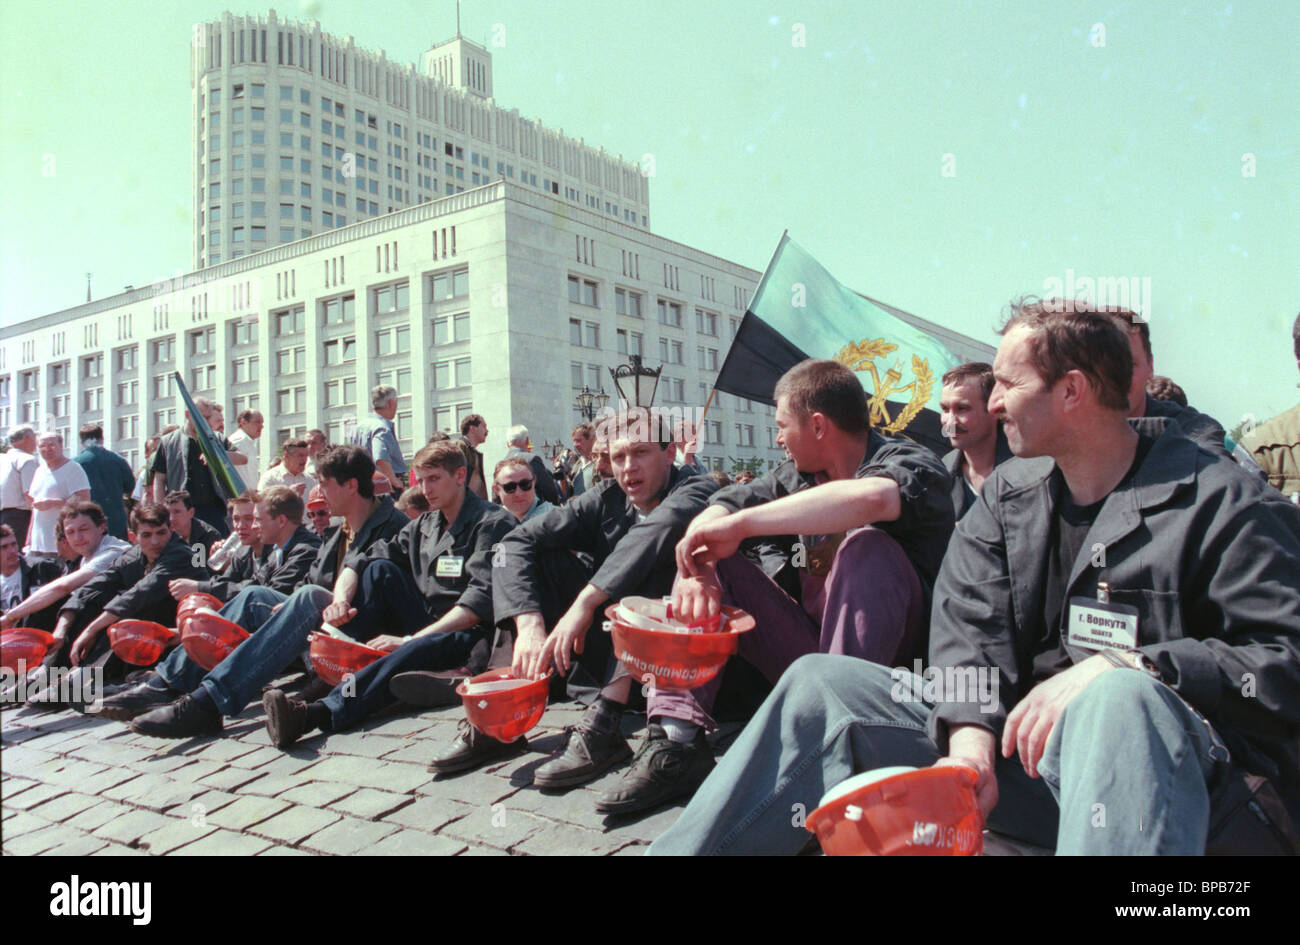 About 150 miners from northern Russian cities of Vorkuta & Inta who arrived in Moscow on Thursday began picketing Stock Photo